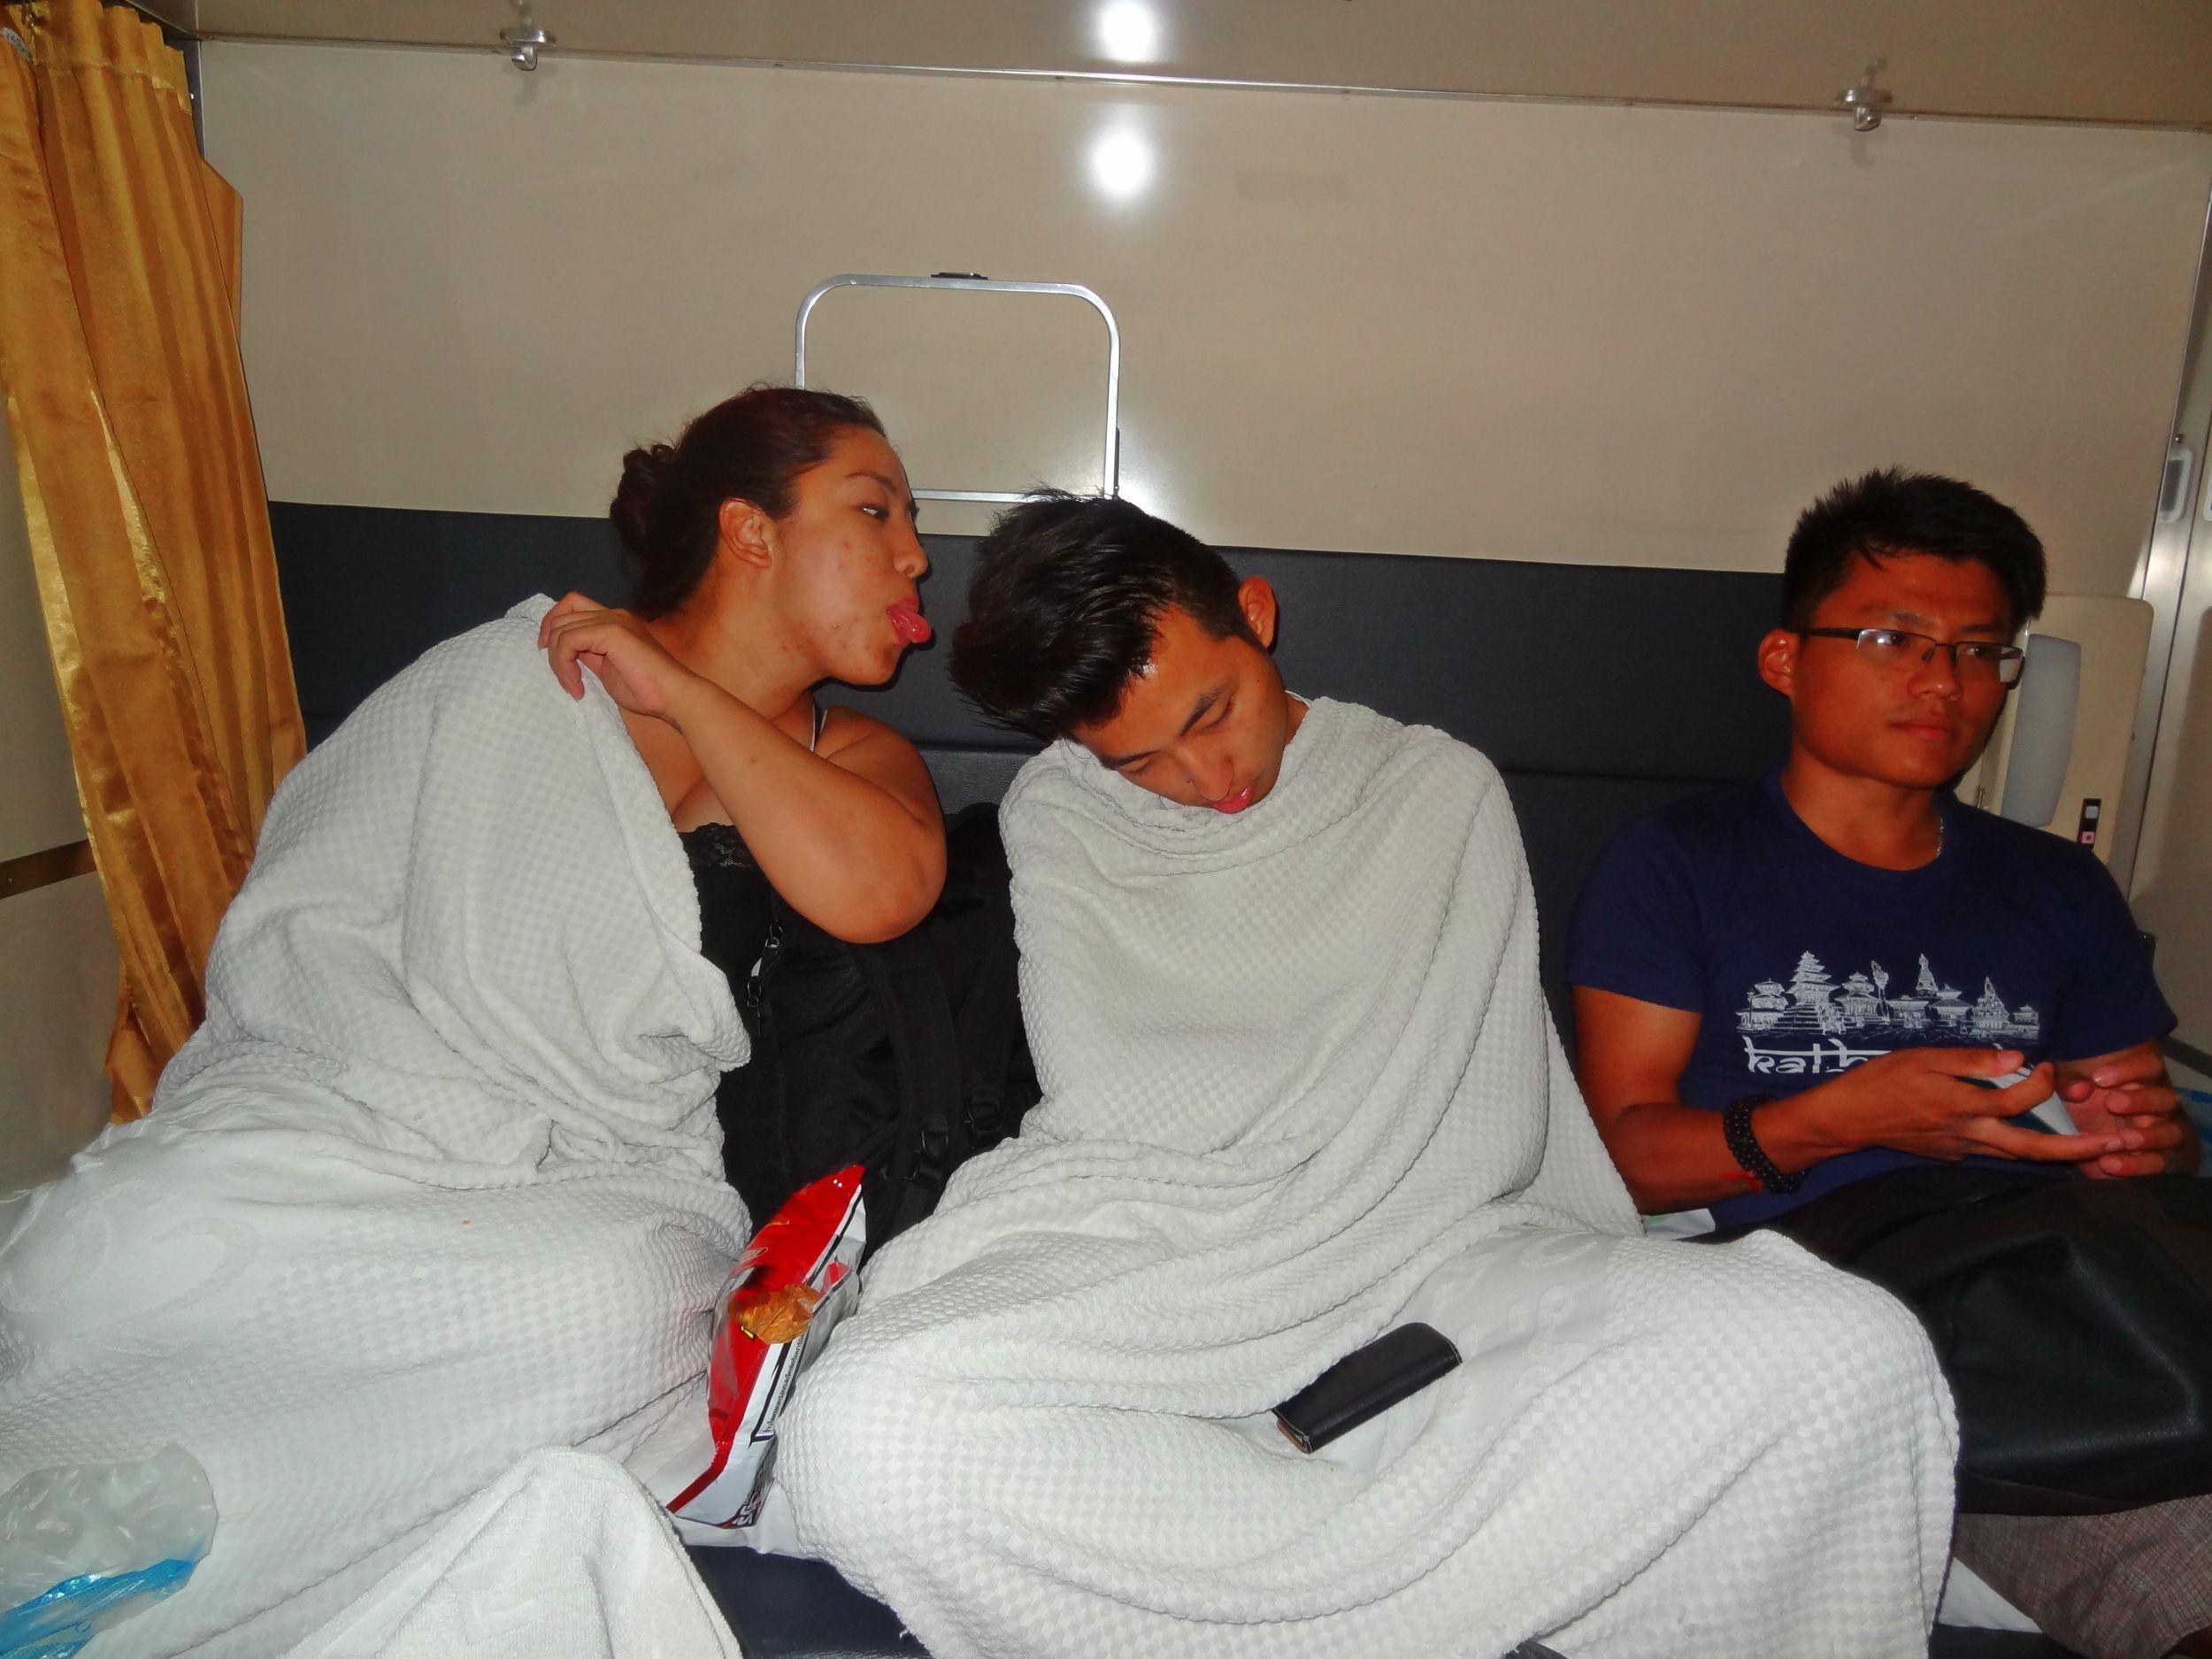 """Aug 15: Departed for Chiang Mai on a sleeper train in the evening. The 12 hour journey ended up taking around 15 hours. I would definitely recommend the overnight train. It was around £20 for one way A/C sleeper compartment. I sleep through anything so I had no problem. Us... """"socialising"""" haha! Celebrating Jason's budday on the train."""